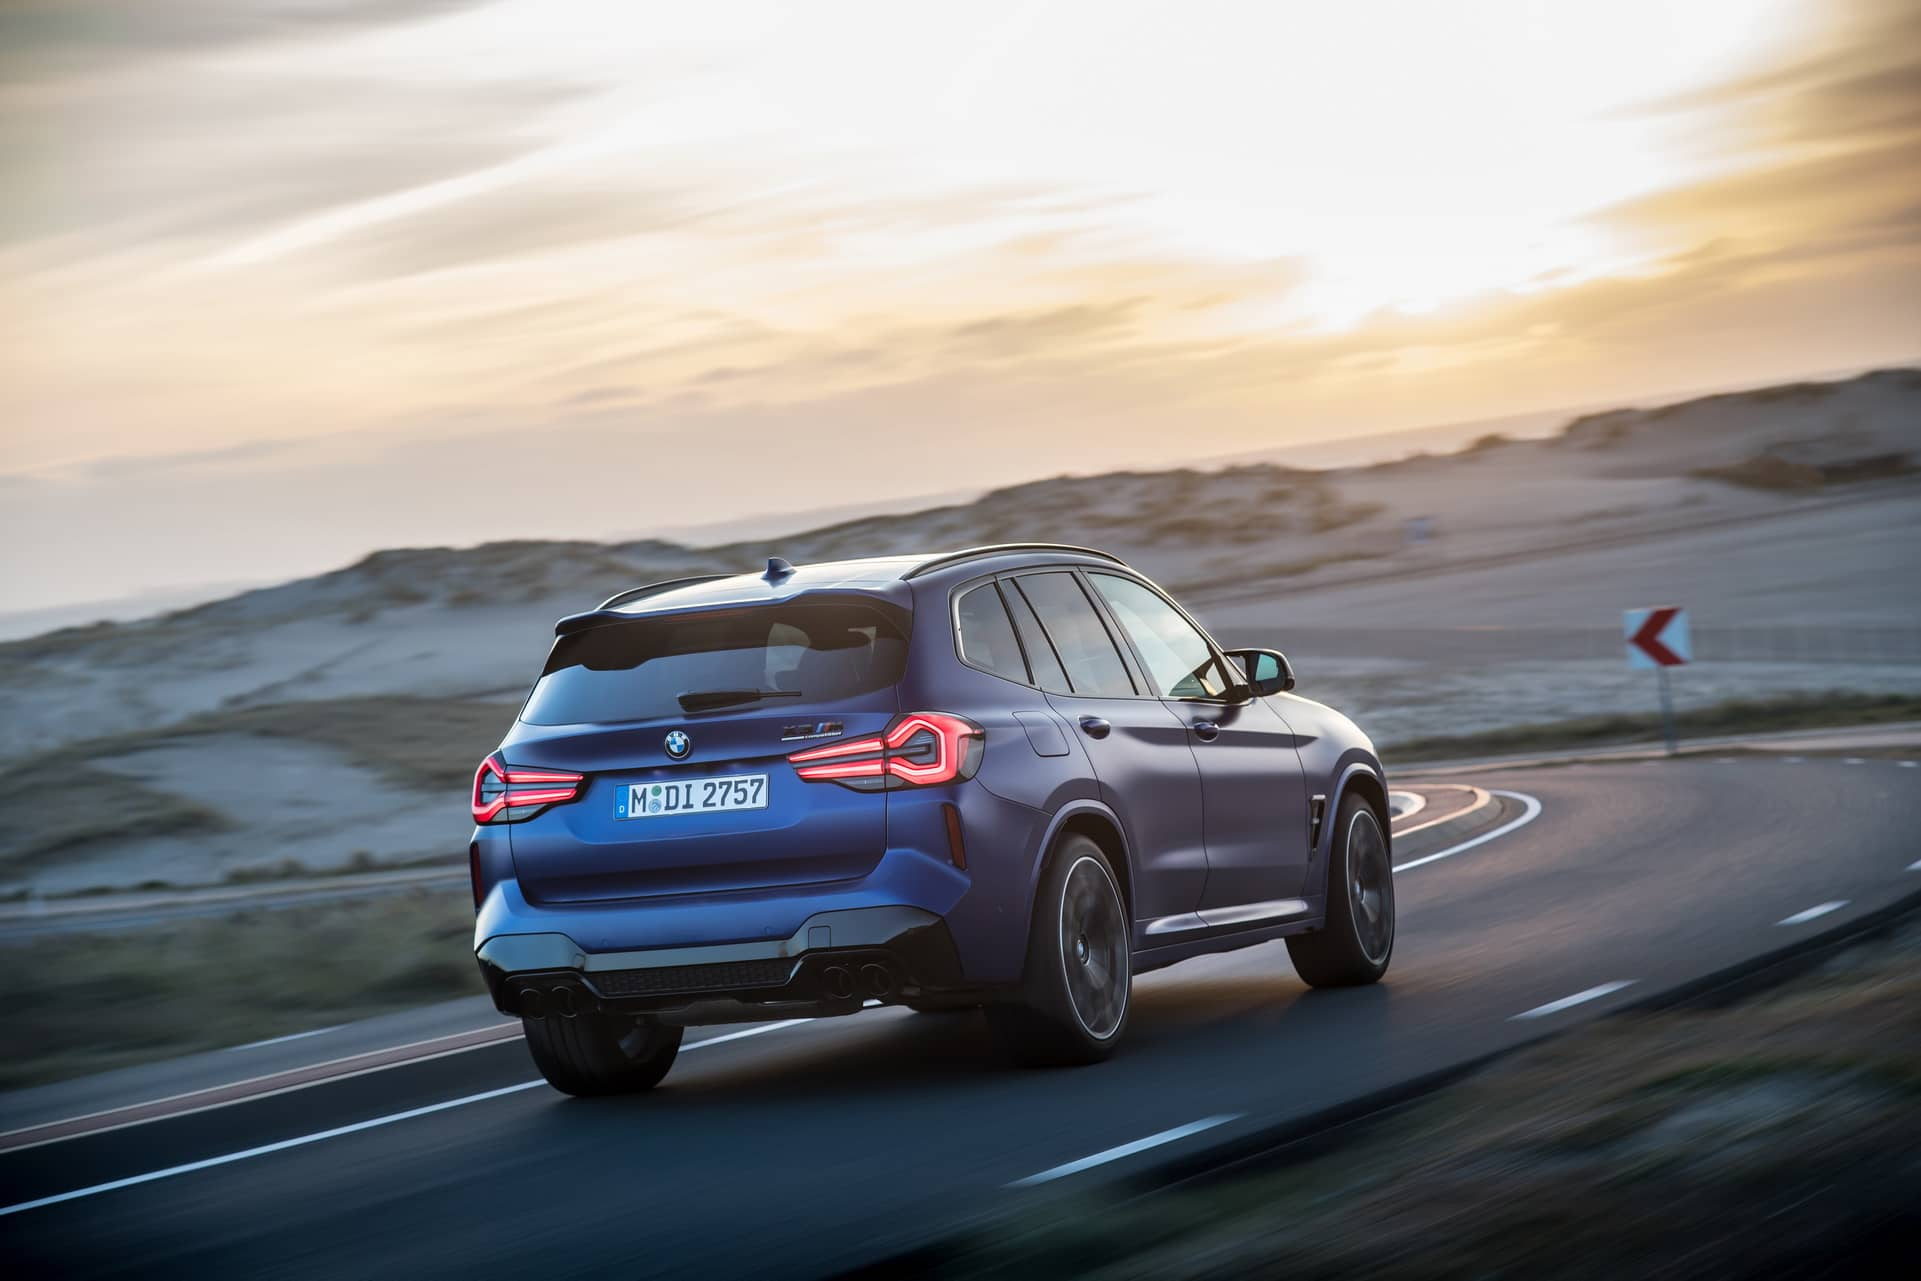 bmw x34 m competition (16)